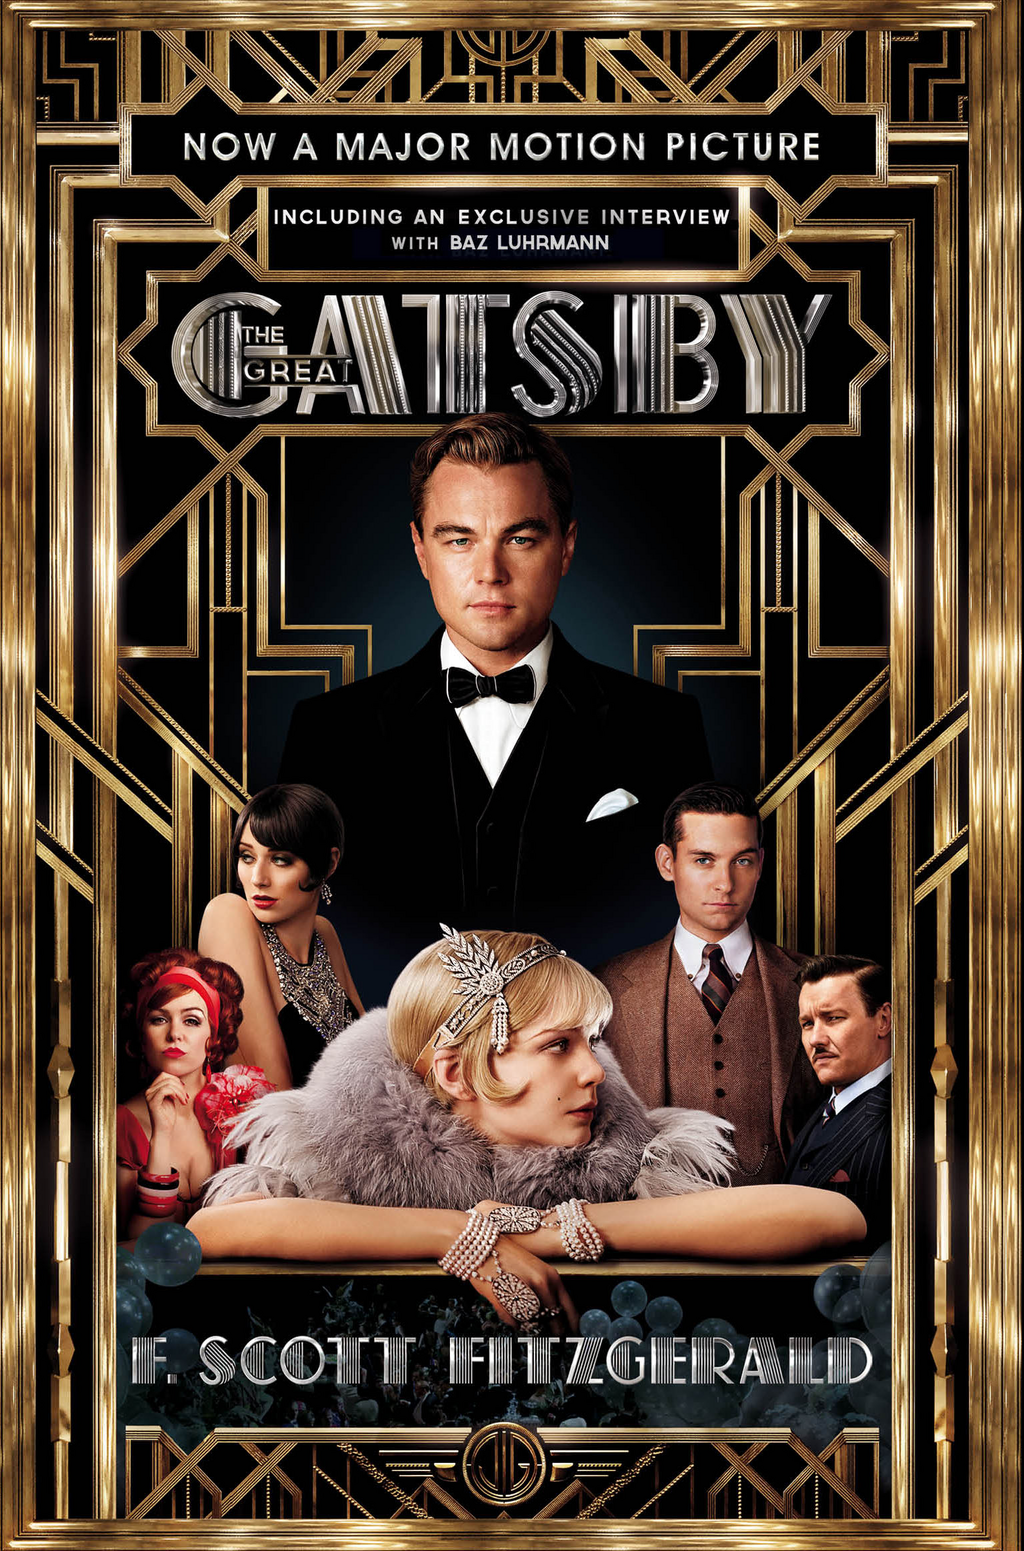 The Great Gatsby Film tie-in Edition Official Film Edition including interview with Baz Luhrmann